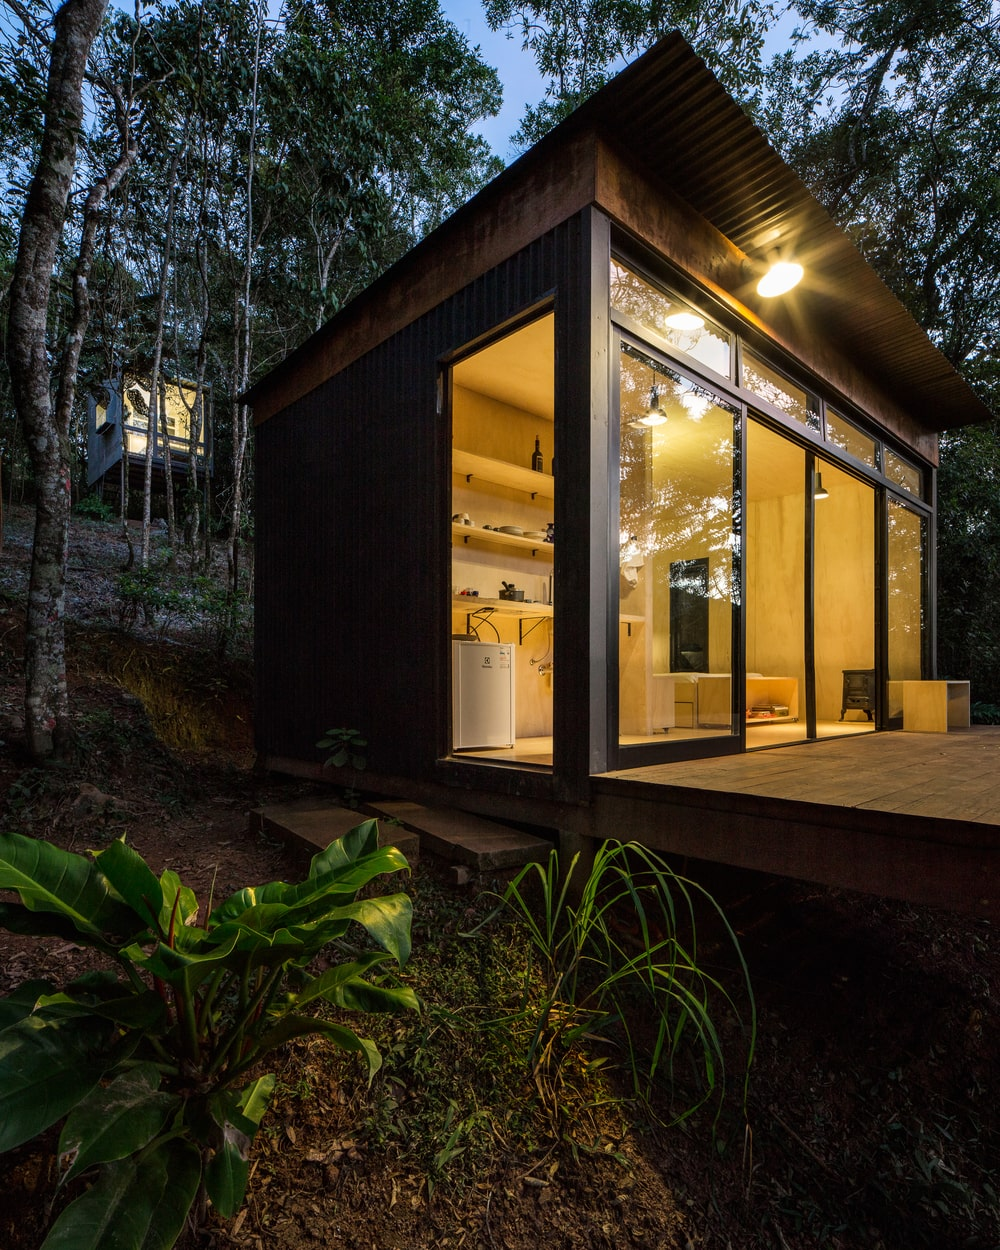 The glas walls and doors of the house glow warmly from the interior lights that escape.